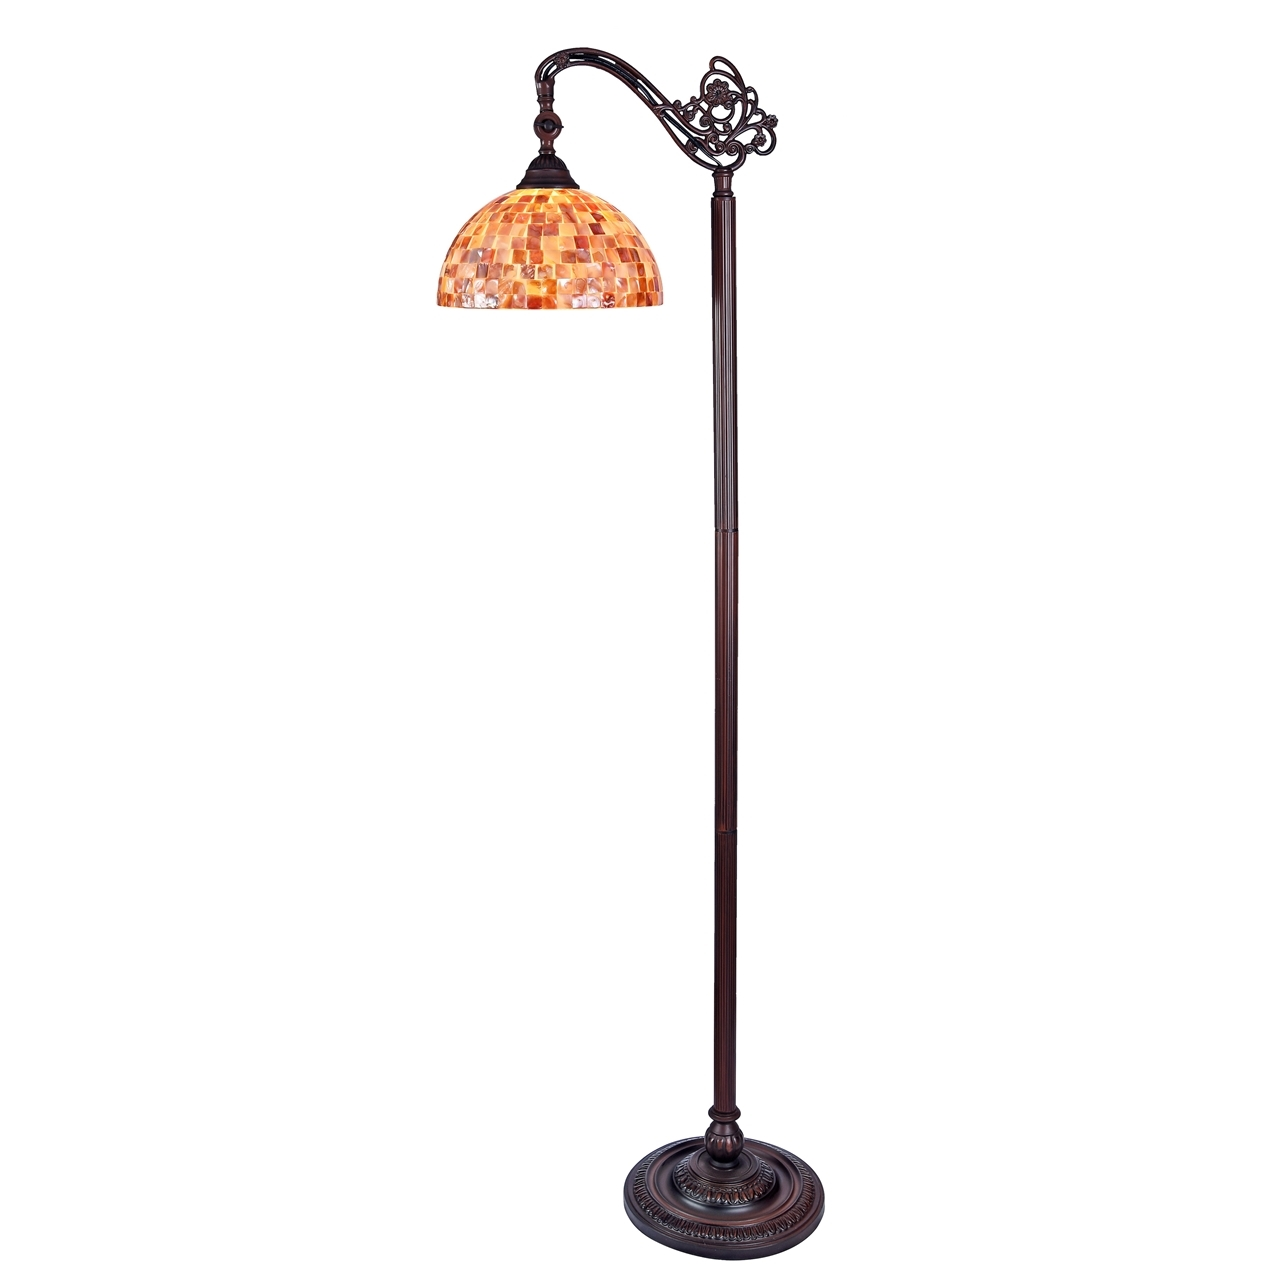 shade floors craftsman reading wooden home outdoor decoration tall corner room pole tolomeo gooseneck ideas rustic full artemide lamp light decorative stand uplighter tripod amazon base for with chandelier by target lamps living modern the gold white floor adjustable sale size buy of design